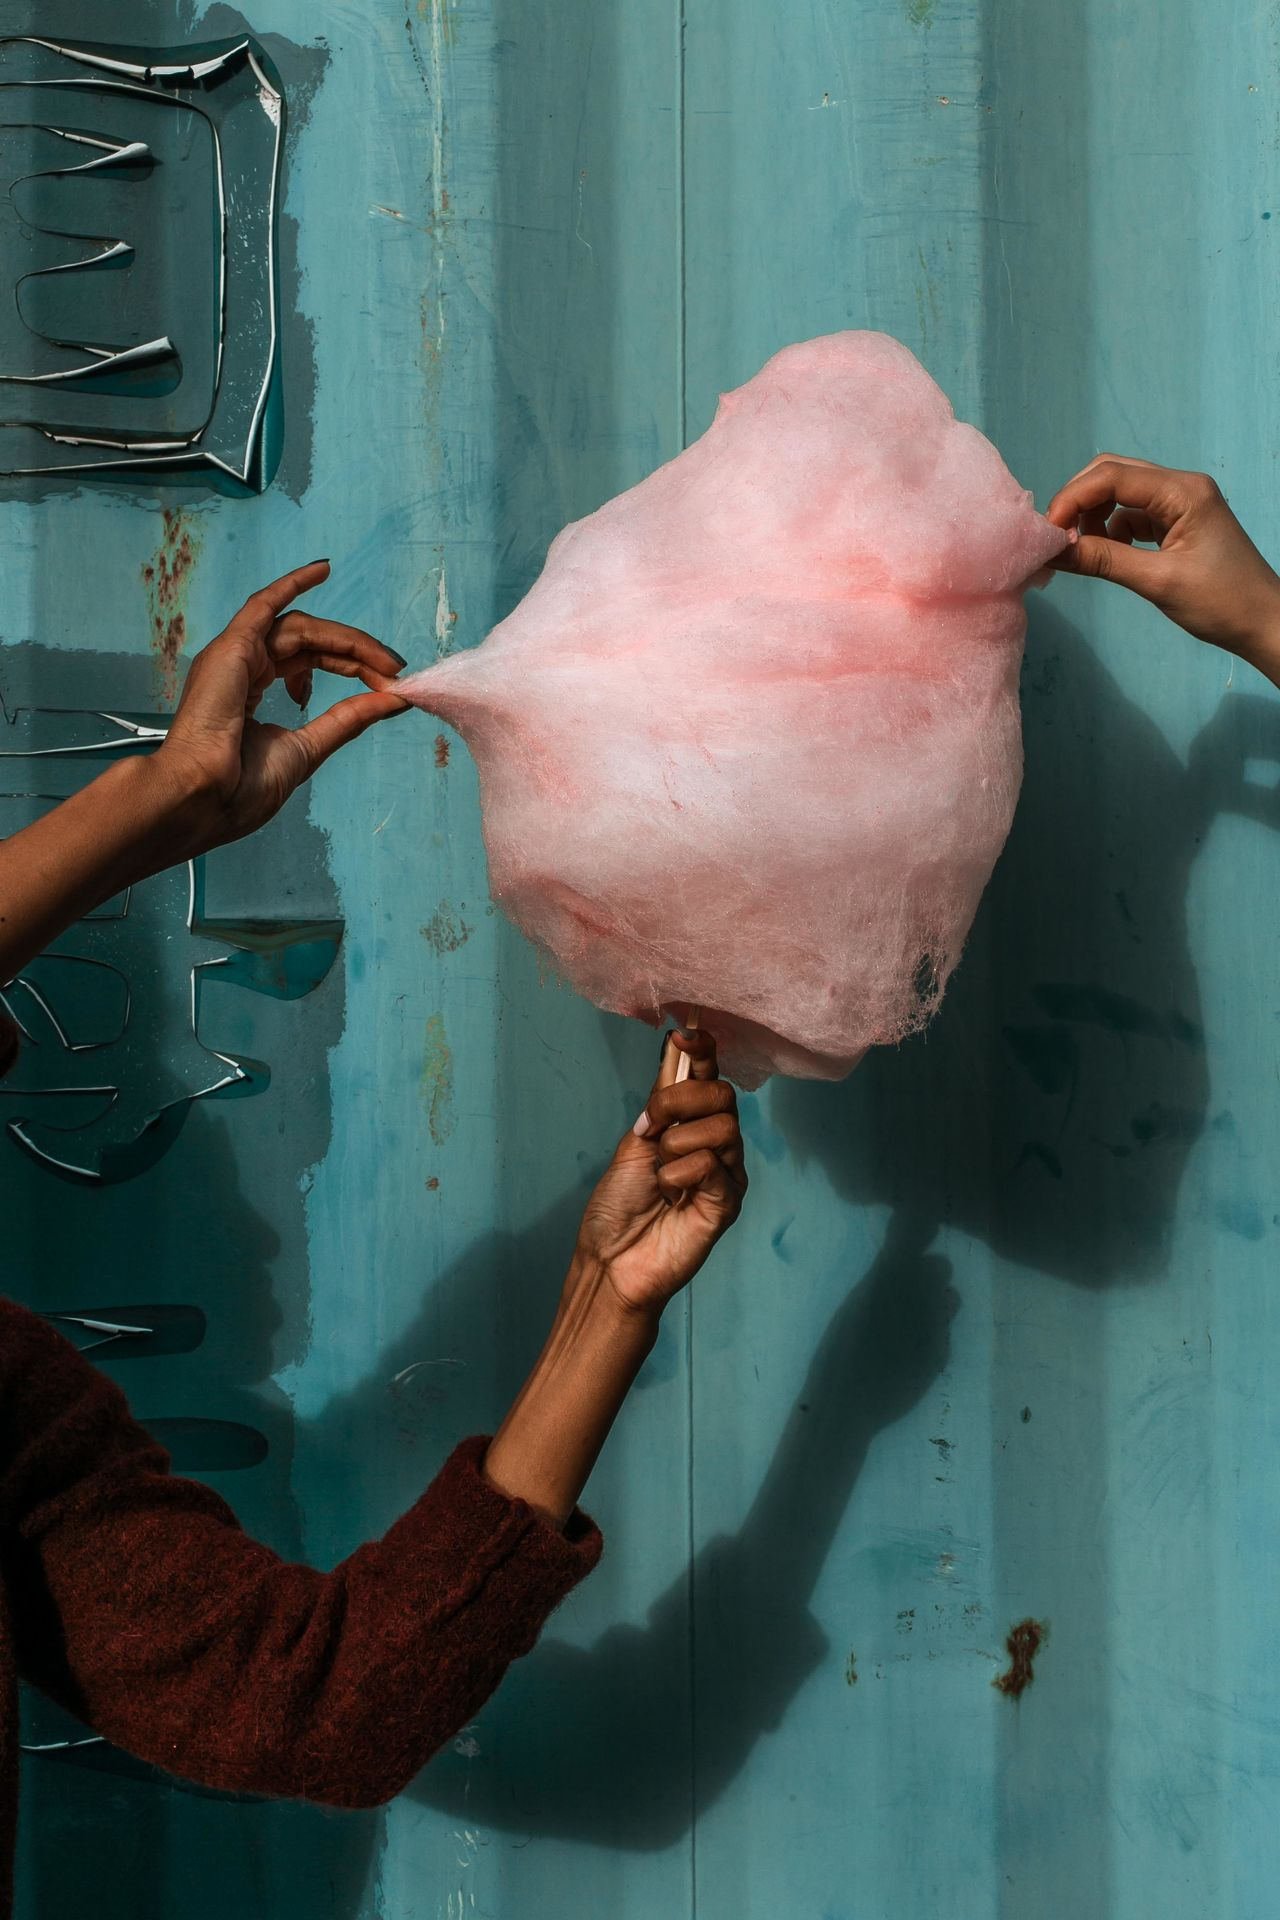 Orgy Dessert cotton candy cottoncandy cottoncandyclouds food human body part human hand pink cotton candy sweet sweet food The Week on EyeEm Rethink Things Fresh on Market 2017